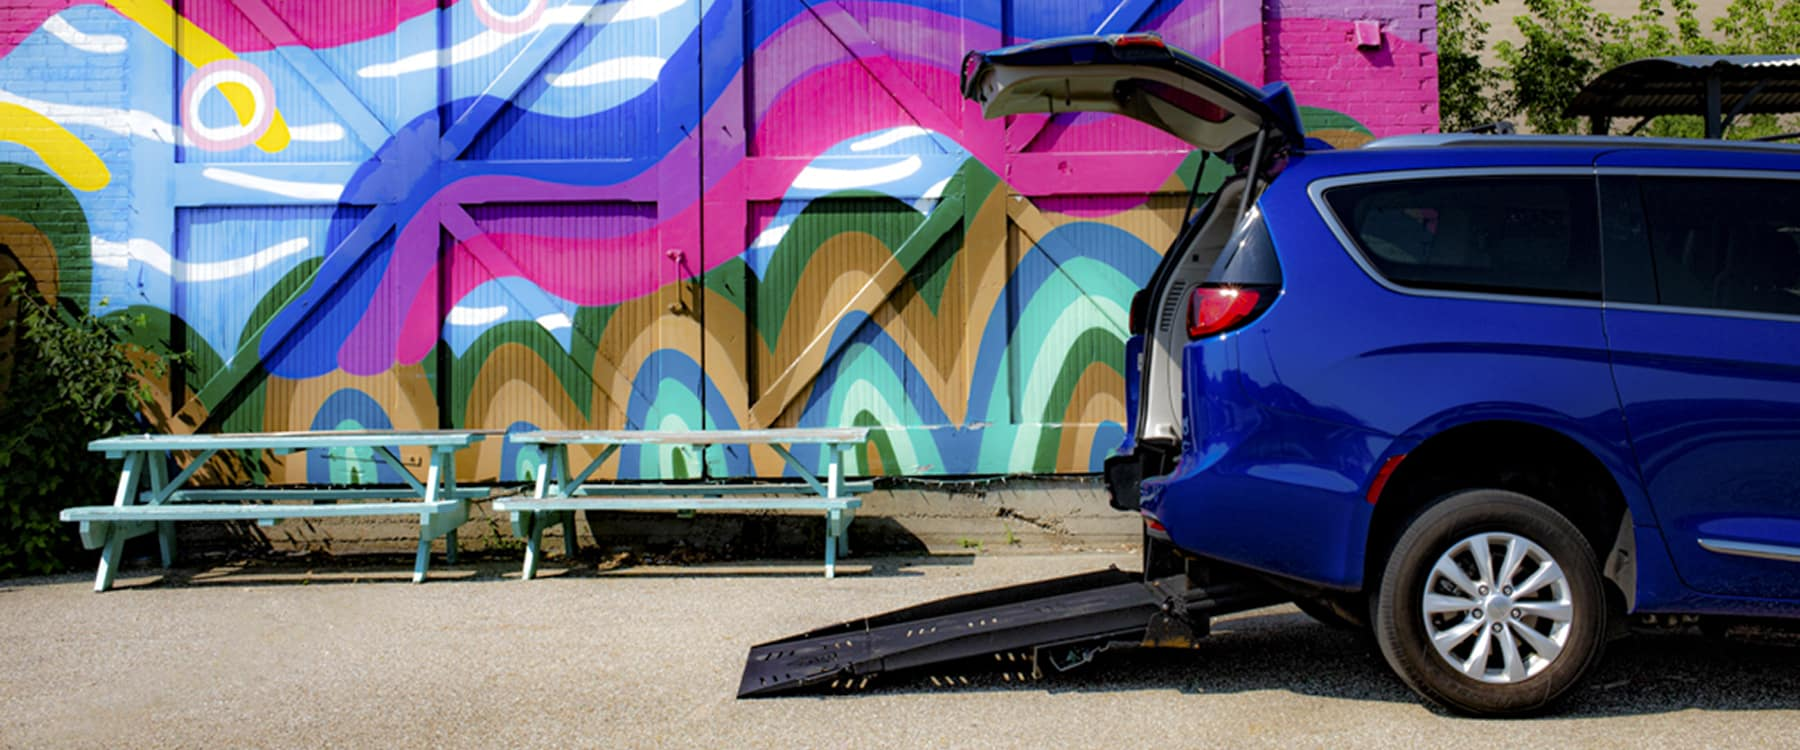 Wheelchair Chrysler Pacifica With Mural in Battle Creek